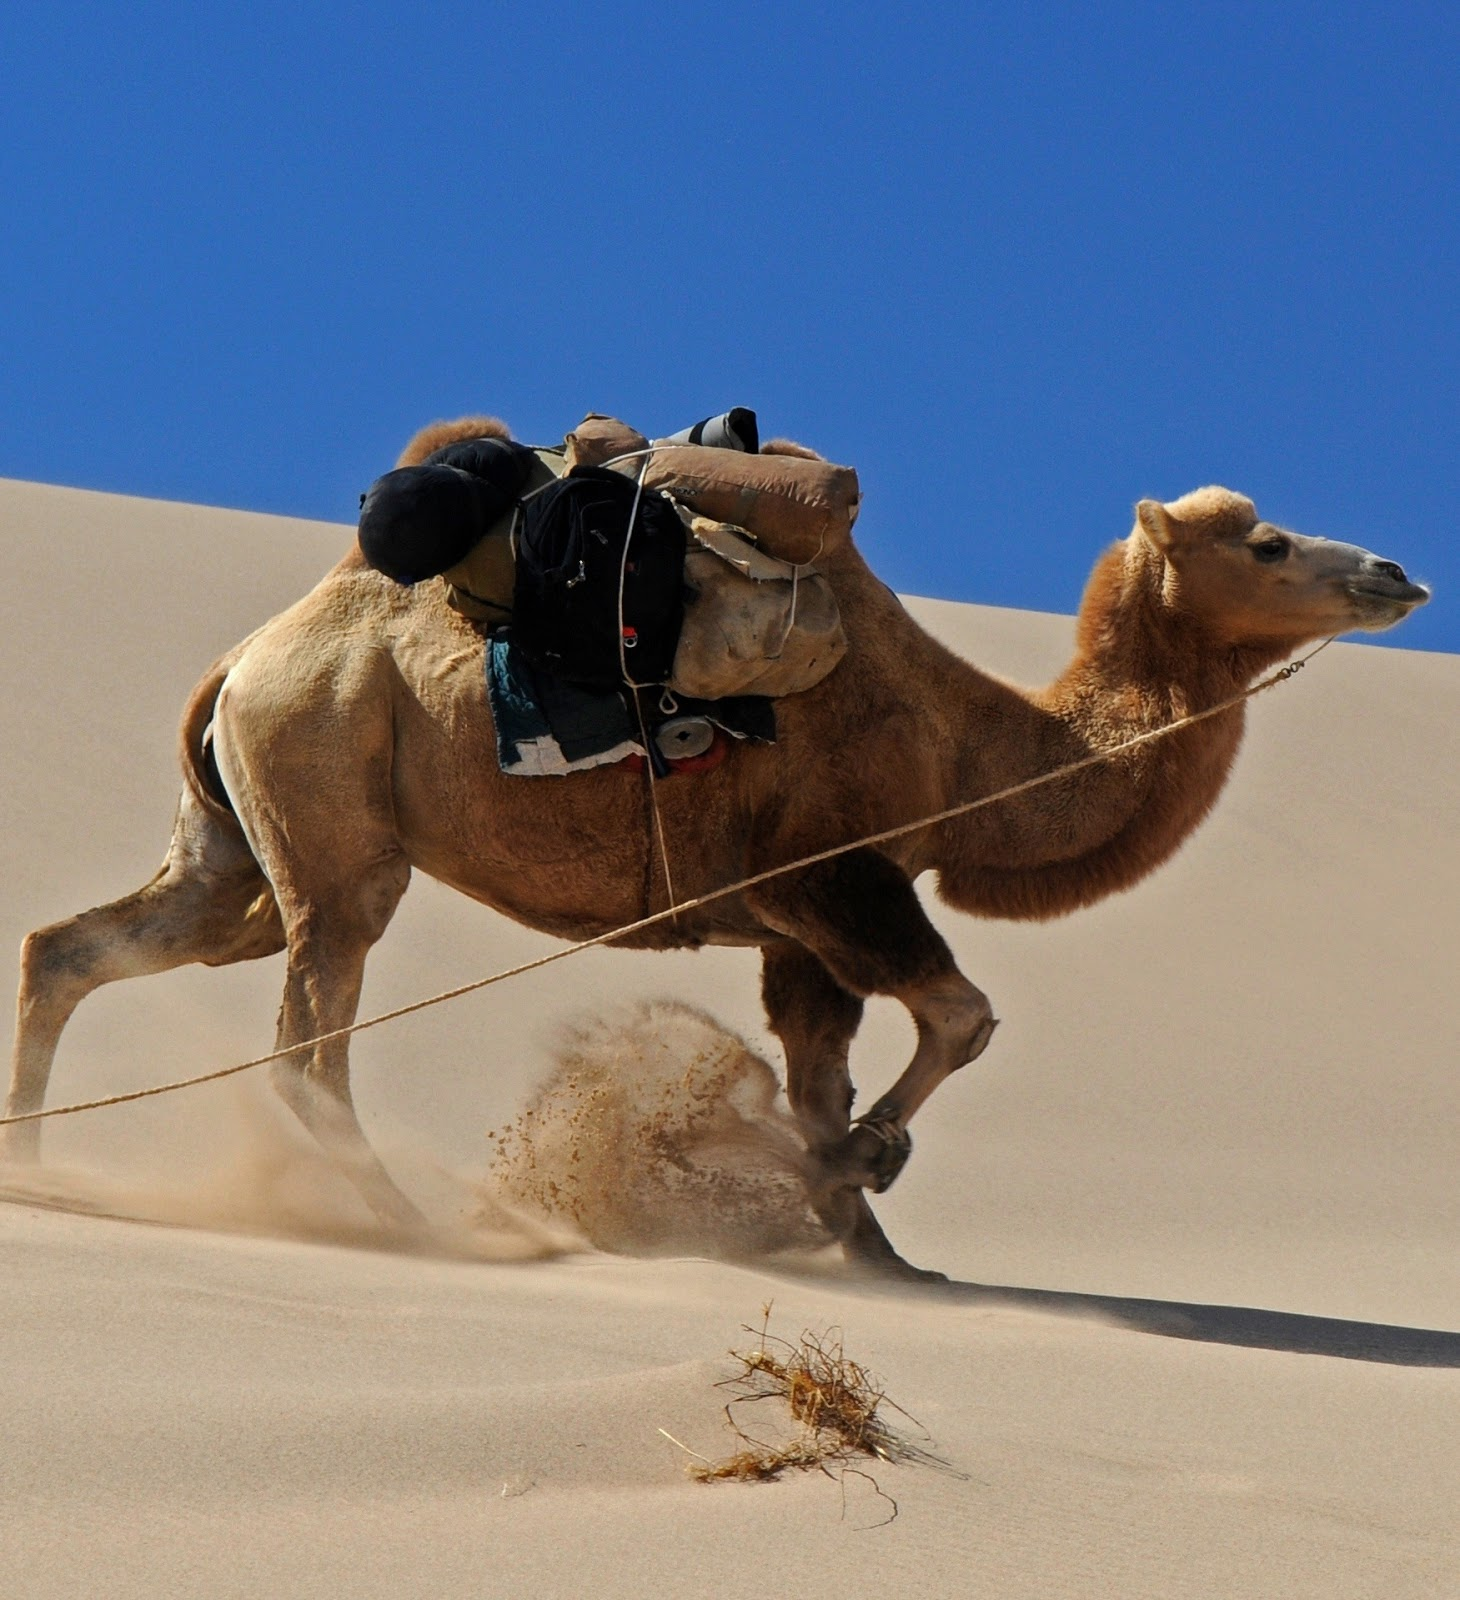 Picture of a camel walking on desert sand.